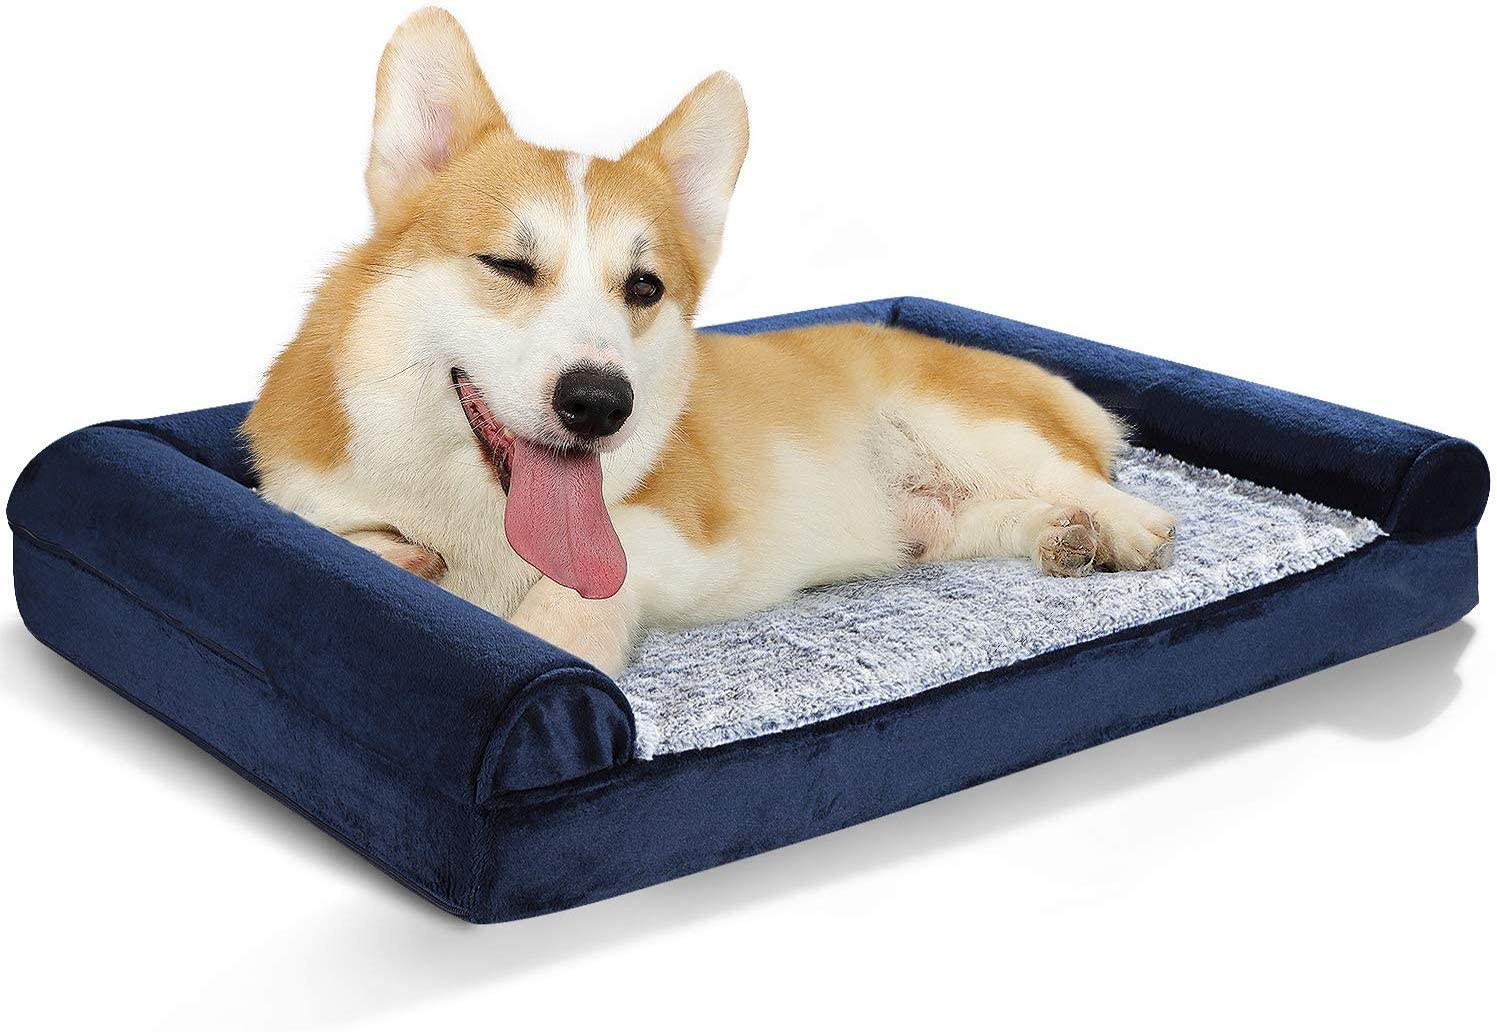 Rabbitgoo Dog Bed Orthopedic Pet Bed, Washable Dog Couch Sofa Bed with Removable Cover Waterproof Liner, Anti-Slip Soft Foam Pet Bed for Medium Dogs Cats Home Sleep, Joint-Relief Bolsters 36x27in